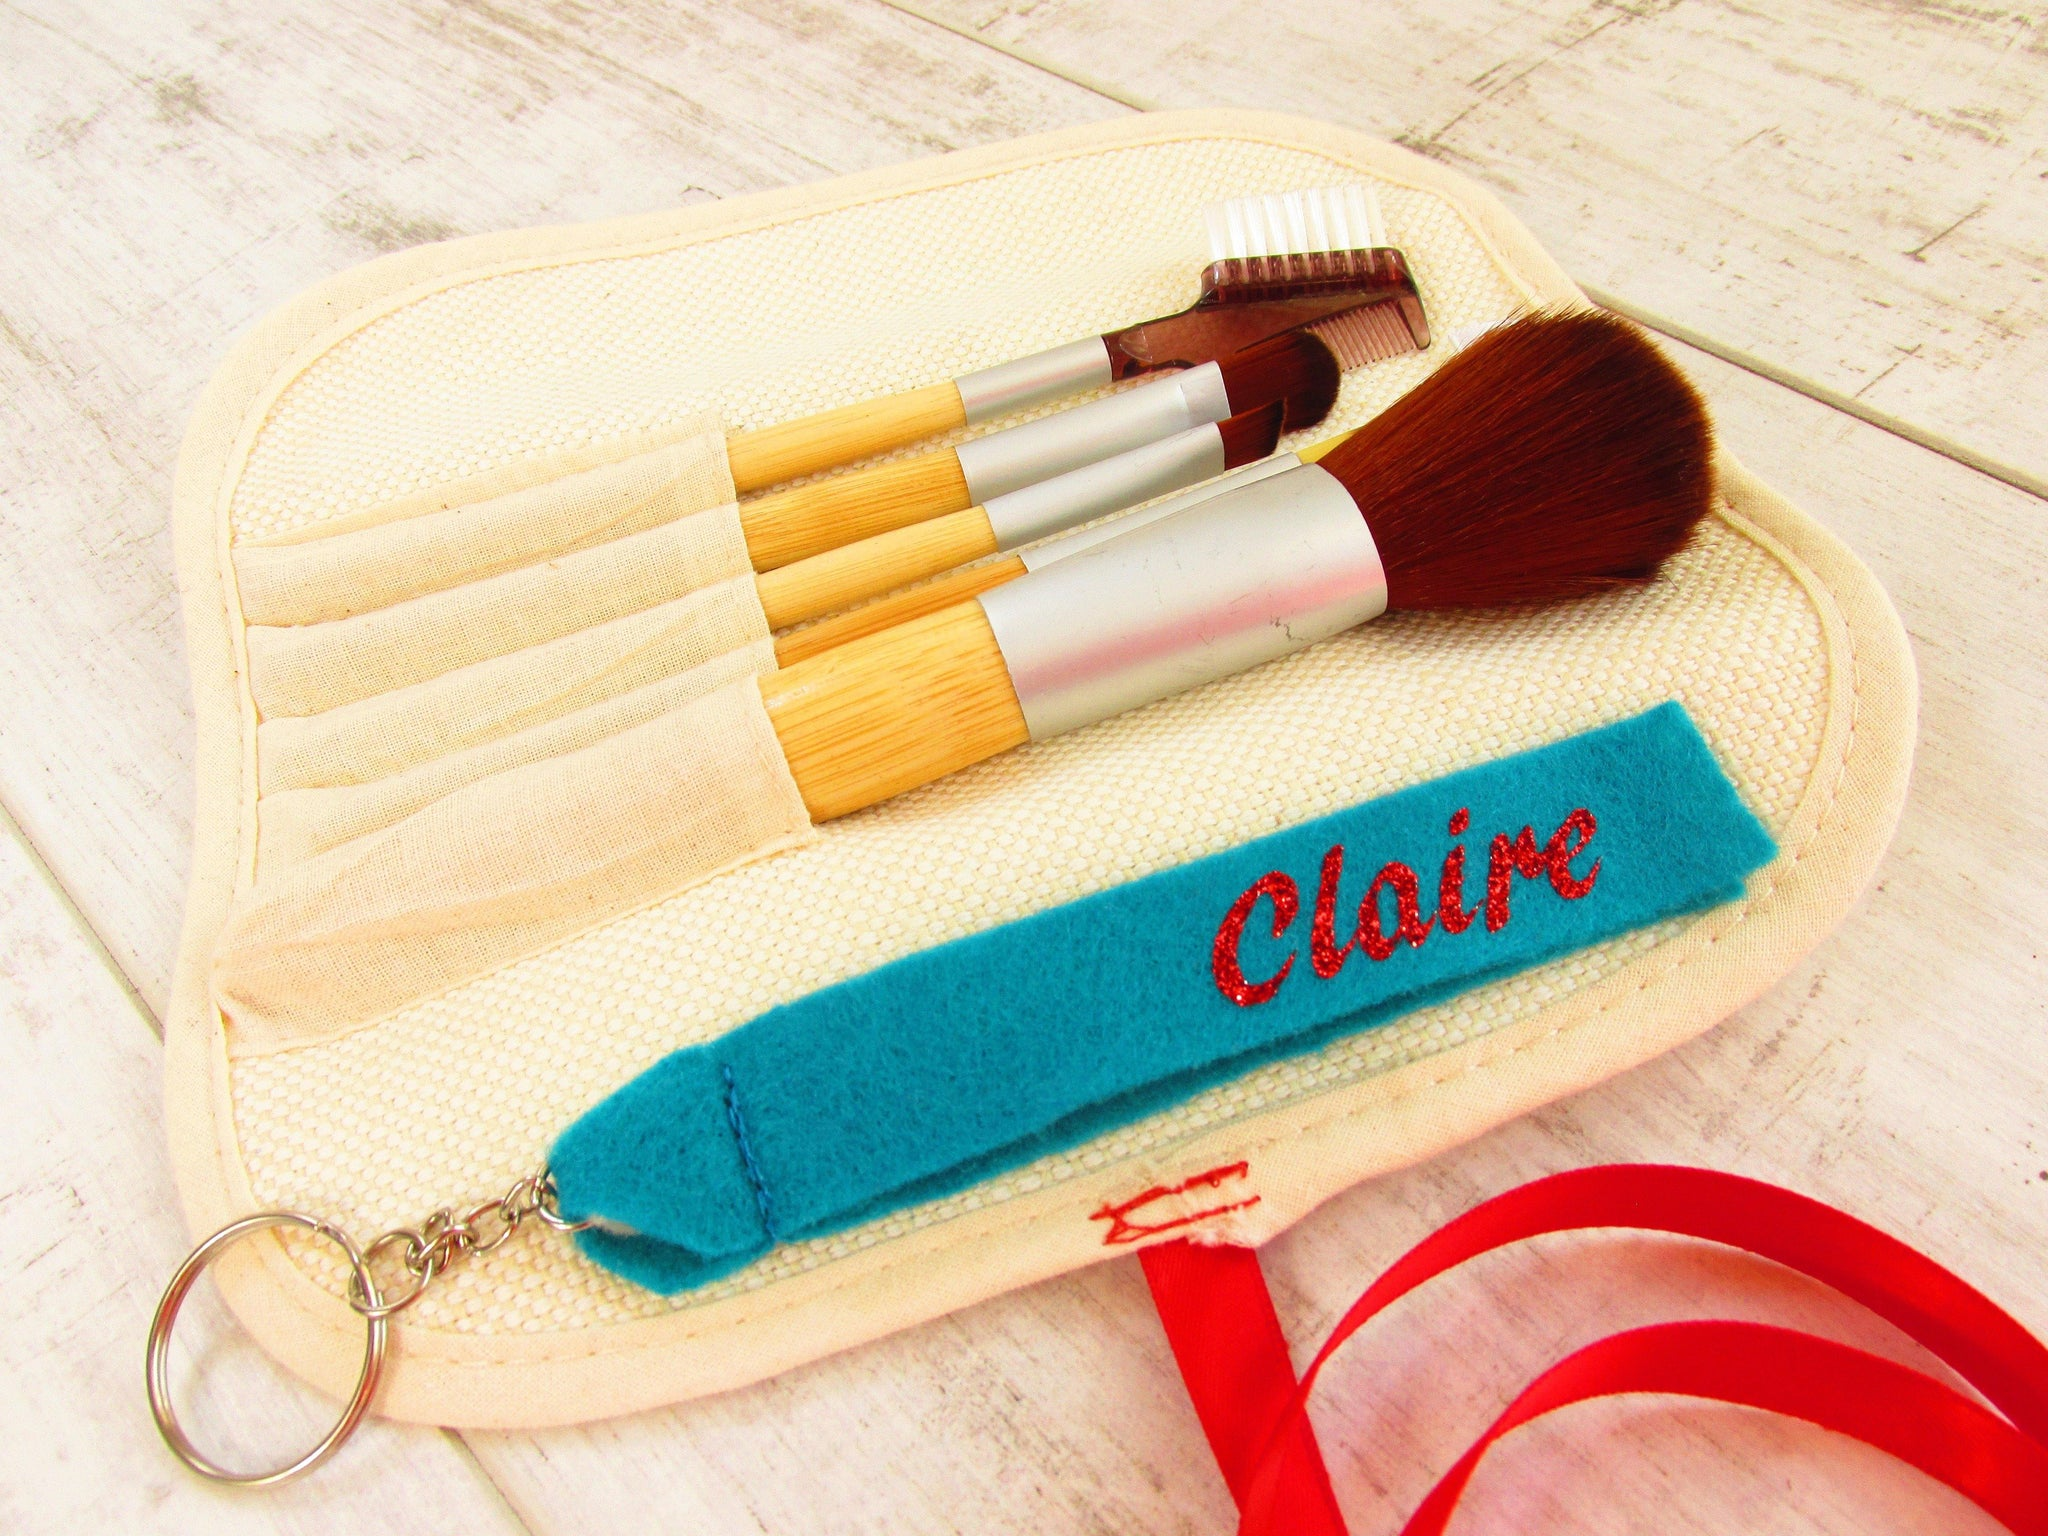 Personalised make up brushes gift set. Set of 5 Make up brushes